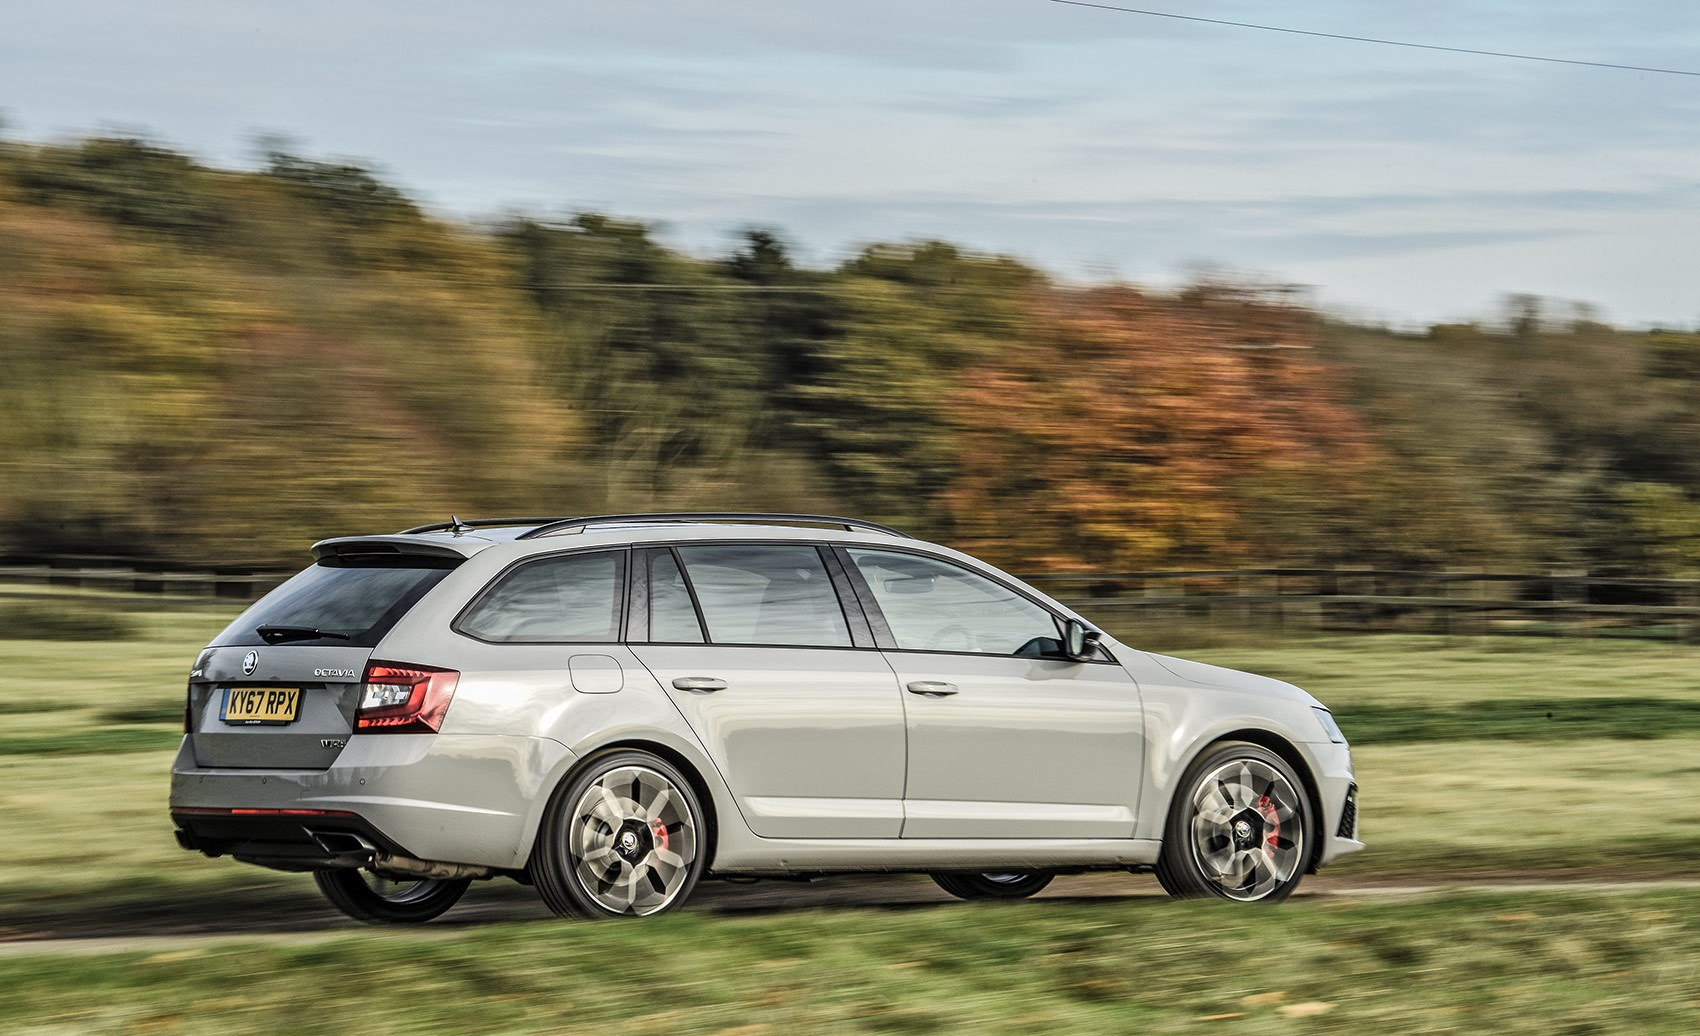 Stealth grey: meet our new Skoda Octavia vRS 245 Estate long-termer ...